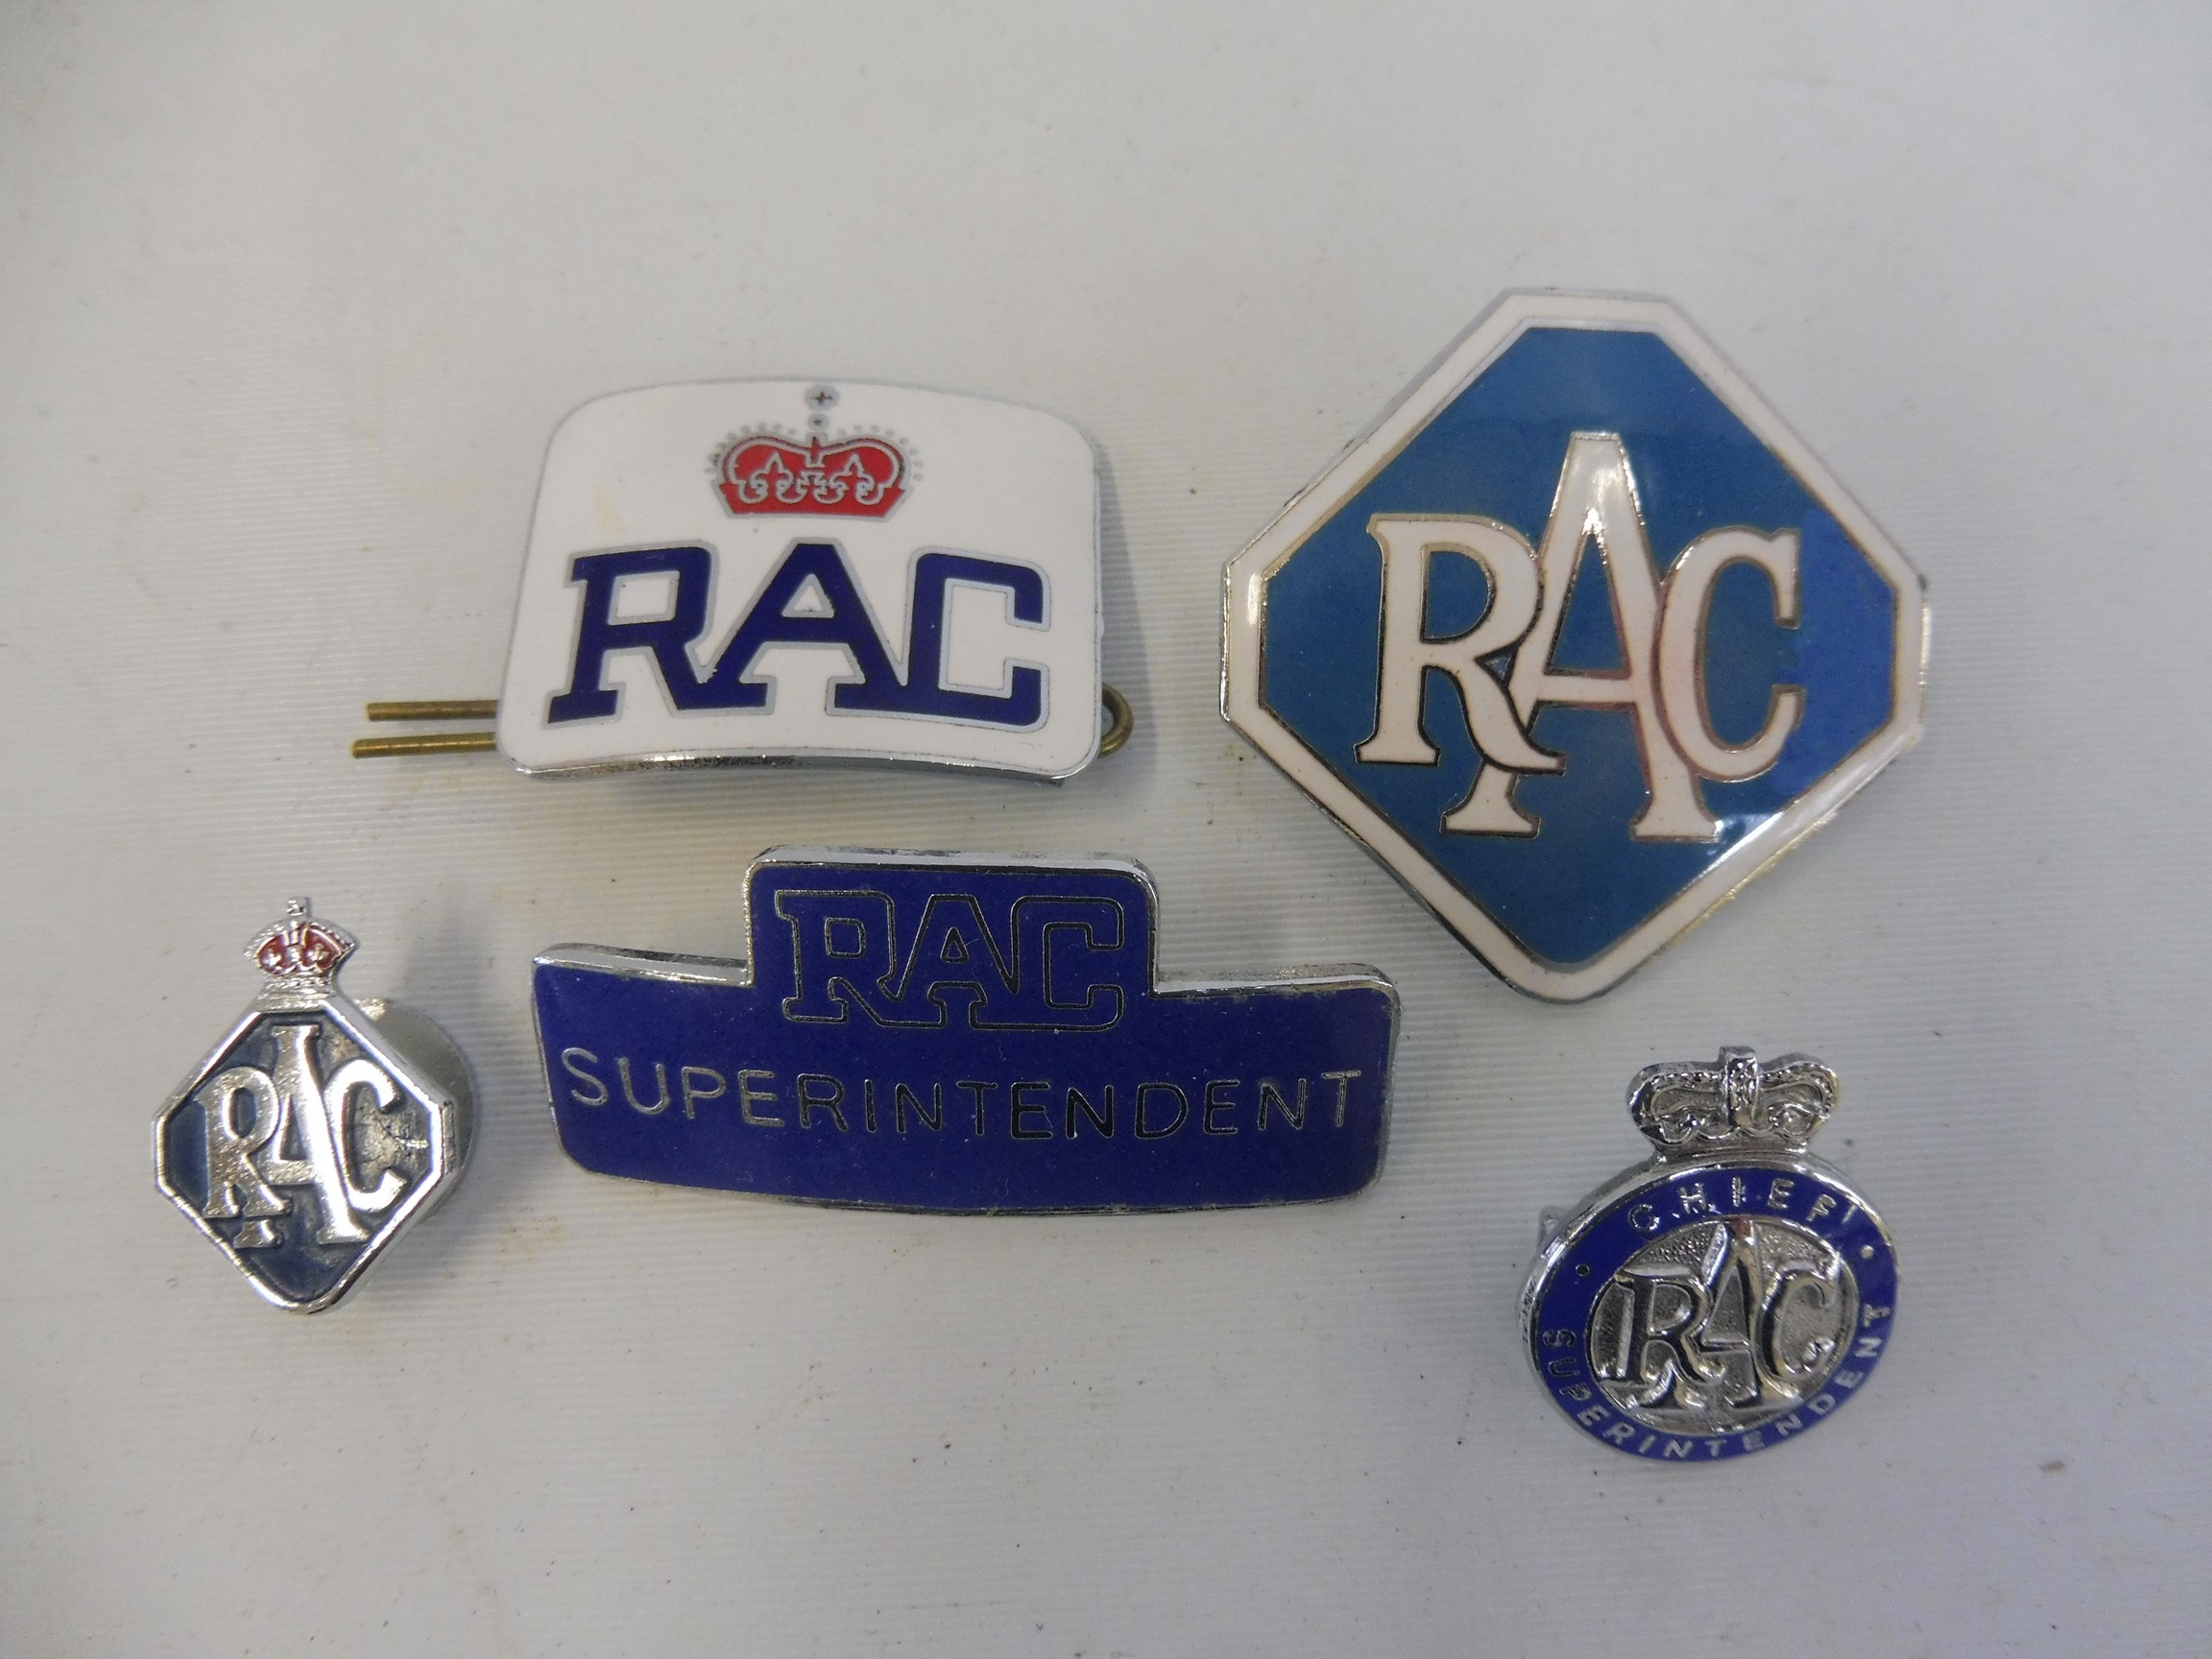 A selection of R.A.C enamel badges including RAC Superintendent and Chief Superintendent.